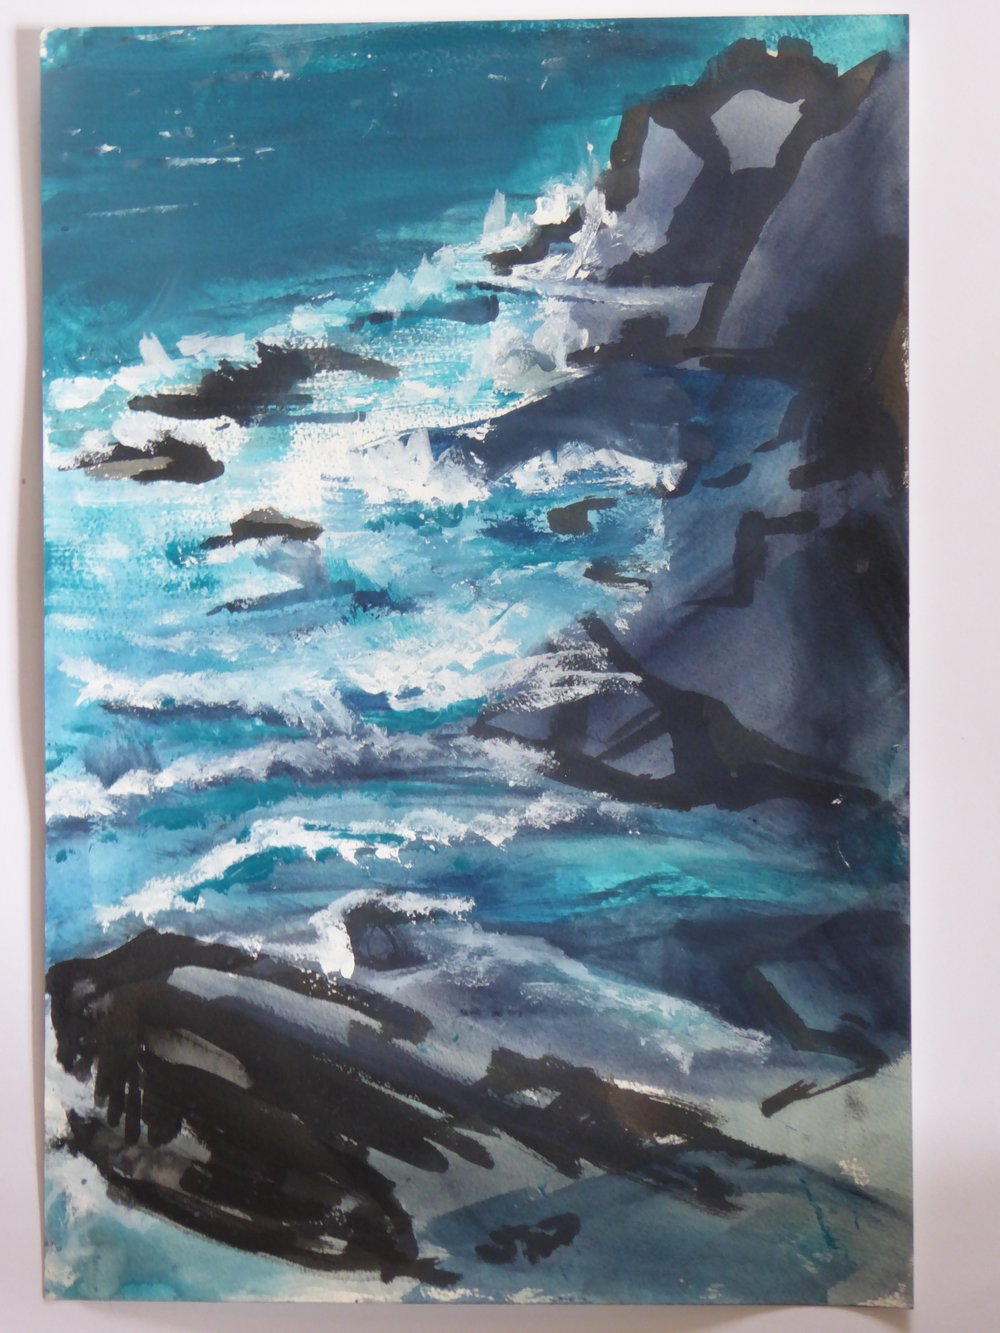 Cape Cornwall: Waves 2 - mixed media on paper